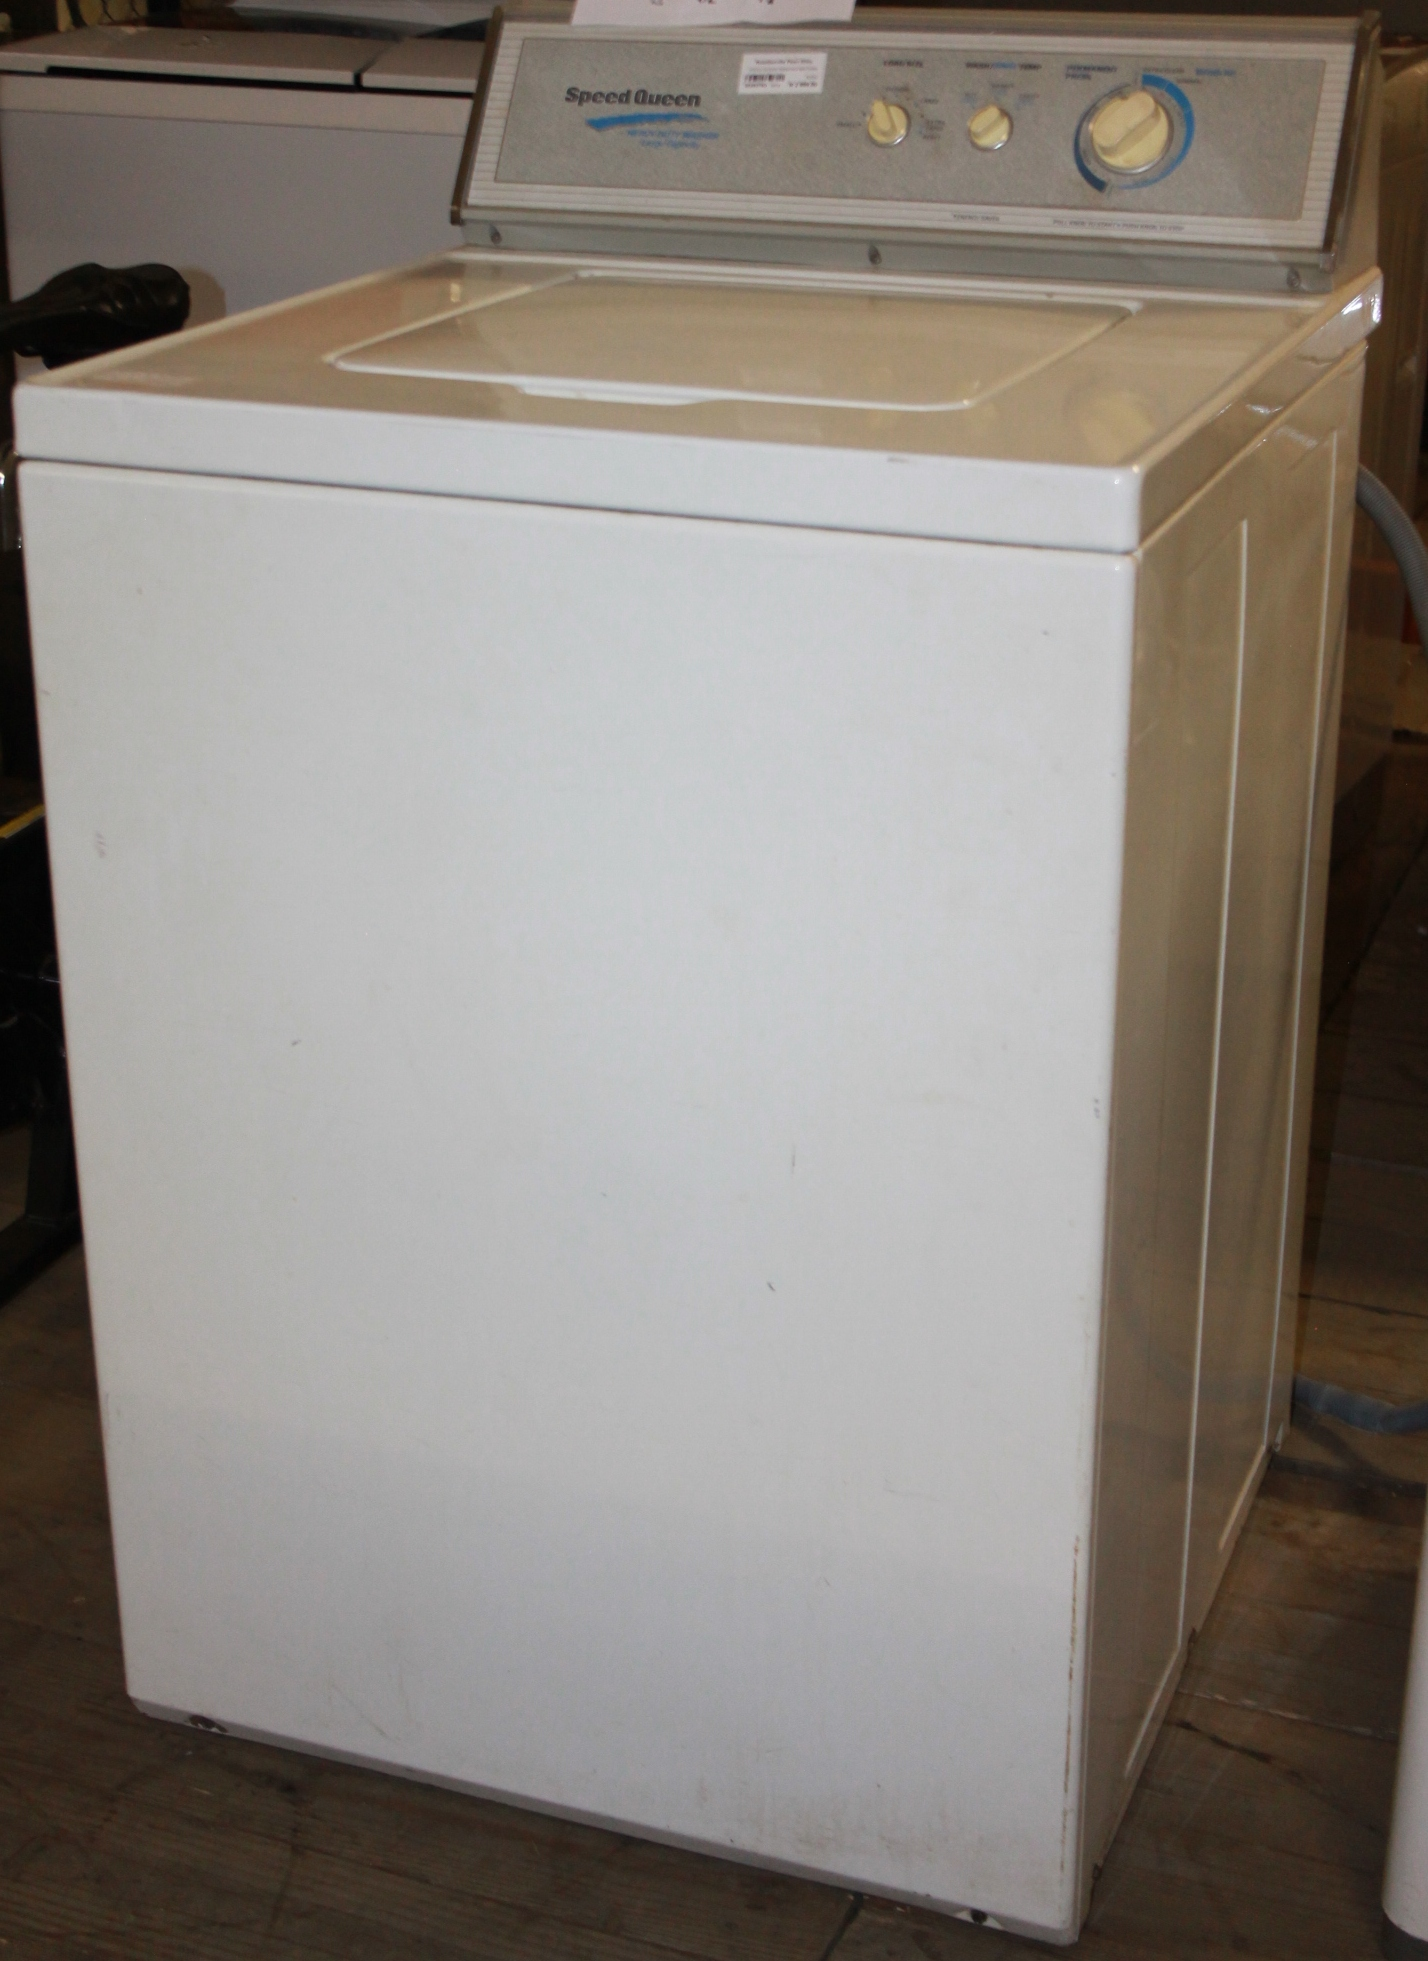 Speed Queen washing machine S029276d #Rosettenvillepawnshop